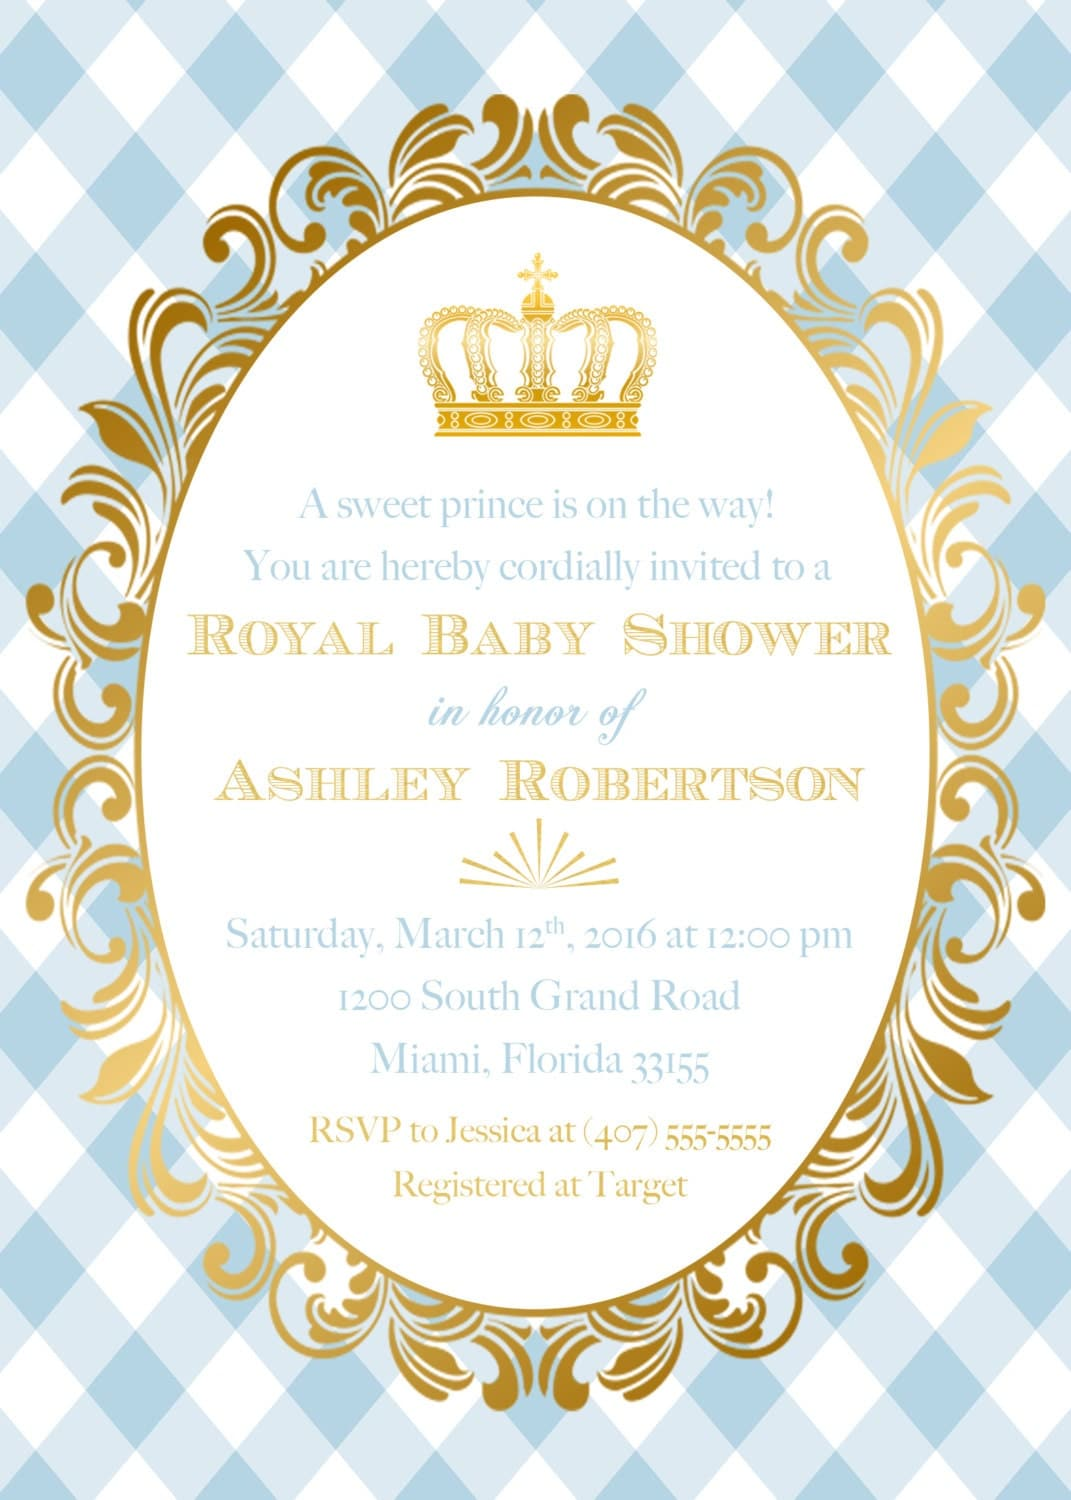 Prince Baby Shower Invitation Royal Gold Foil On Little Prince Baby ...